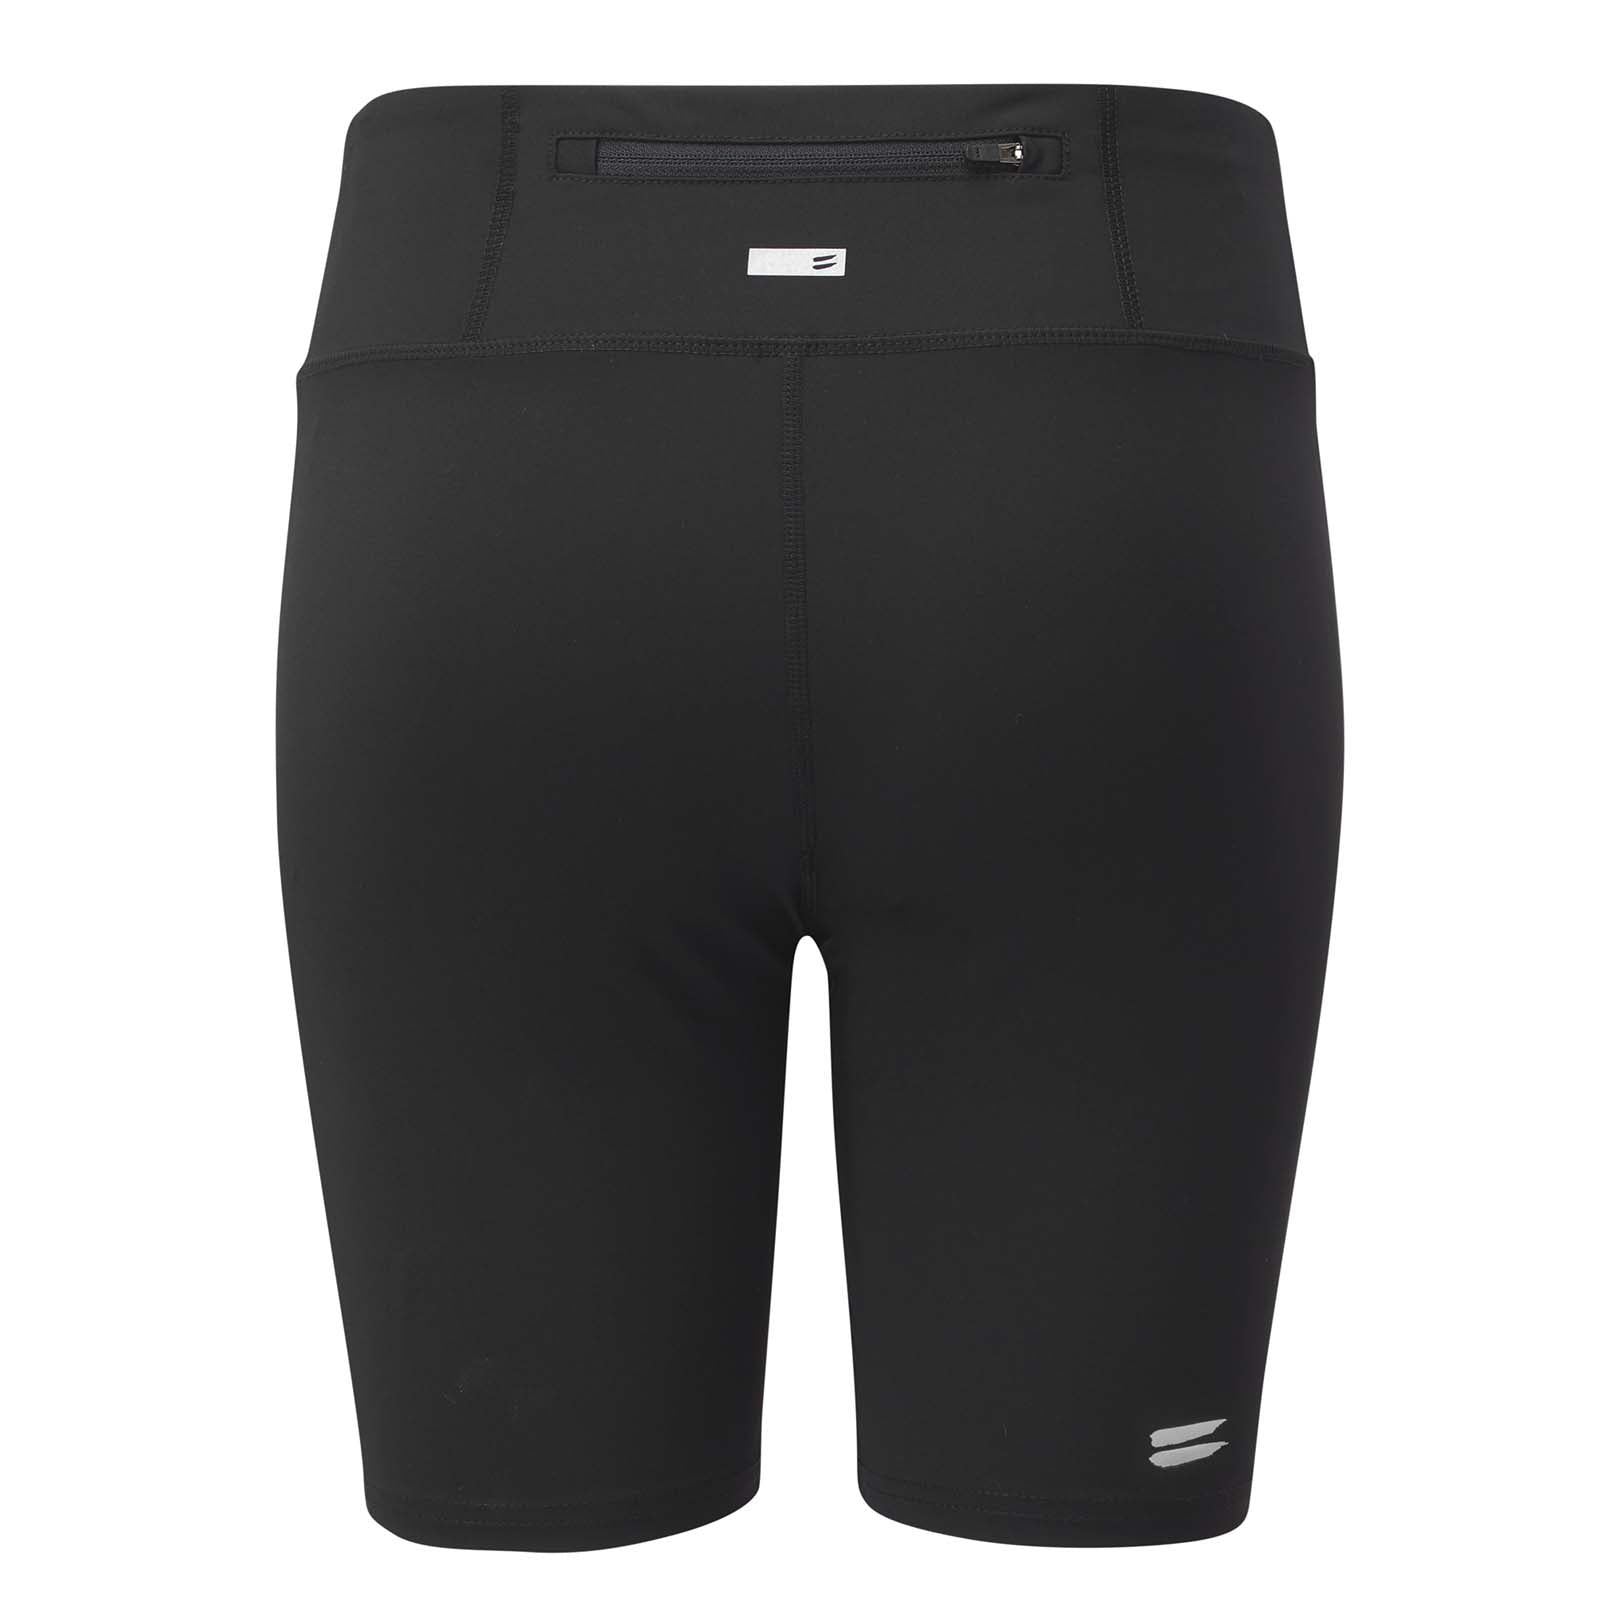 Endure Pro Shorts - Black